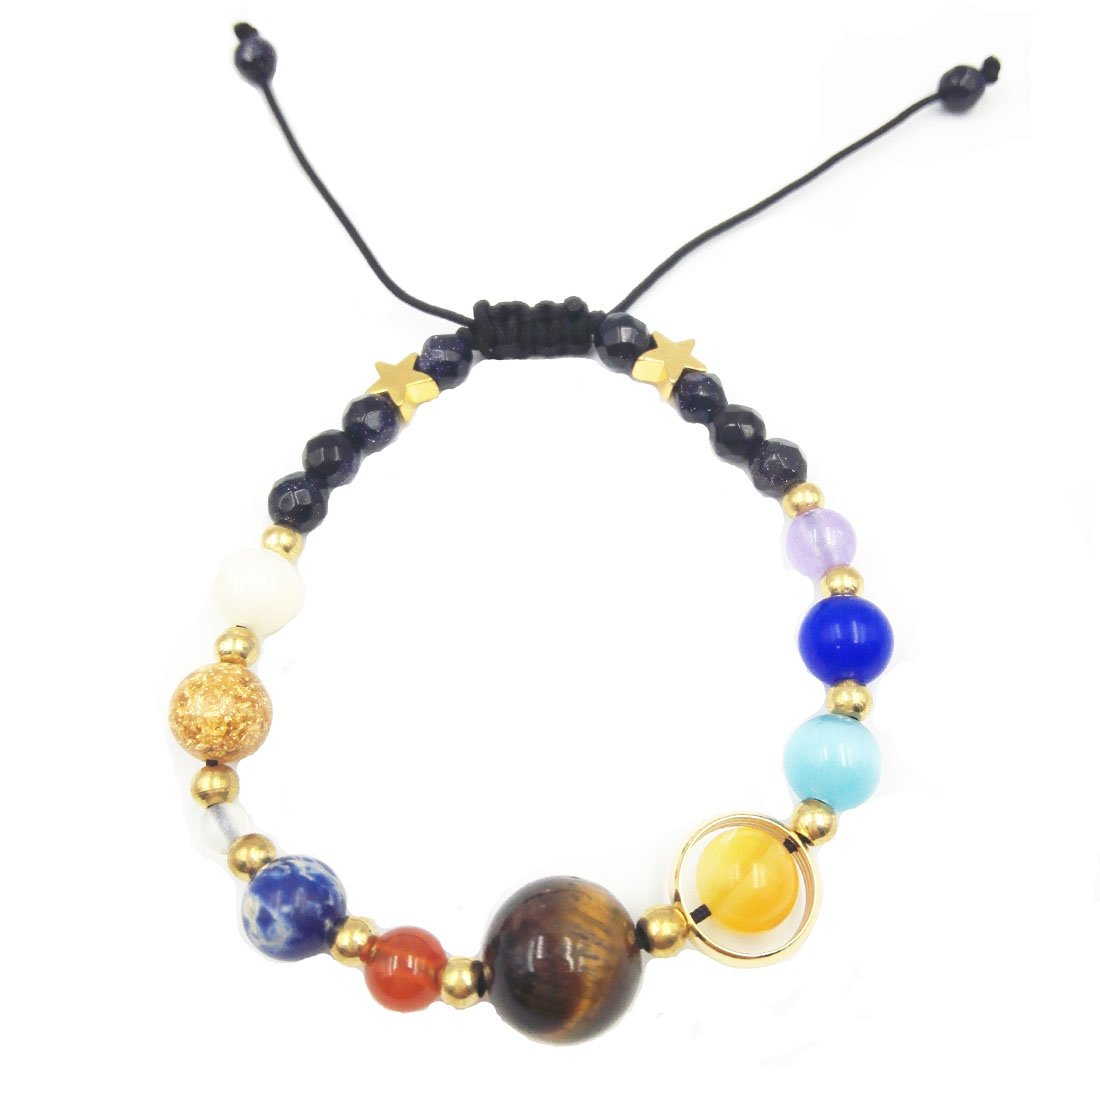 sdsruioo Handmade Solar System Bracelet Universe Galaxy The Nine Planets Guardian Star Natural Stone Beads Bracelets Bangles For Women and Men Gift (Adjustable Size)